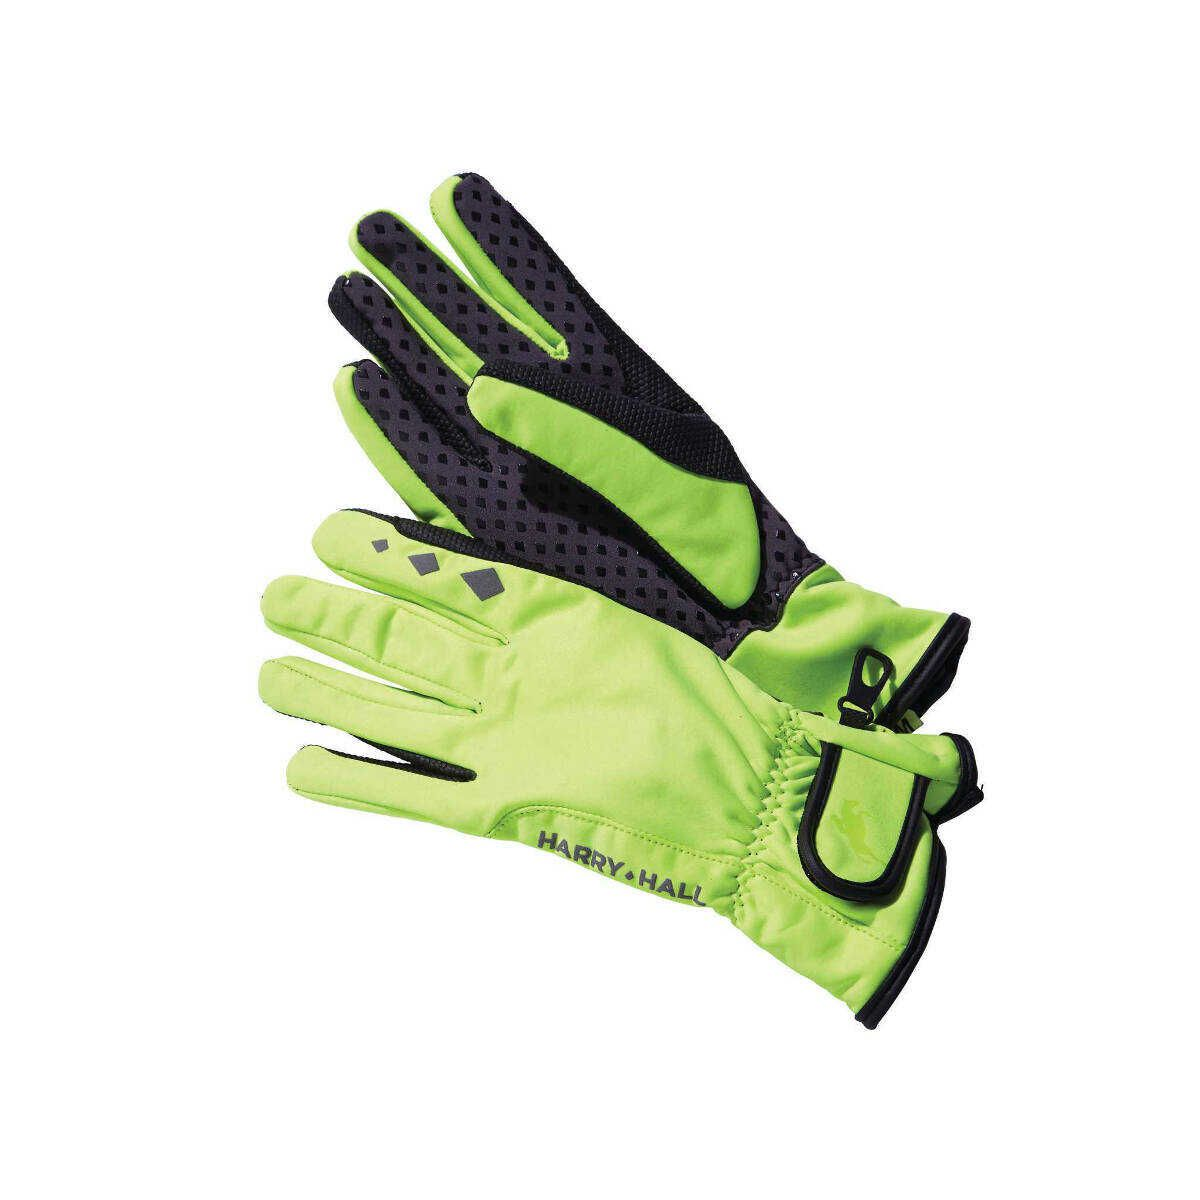 Harry Hall HiViz Thinsulate Softshell Riding Gloves